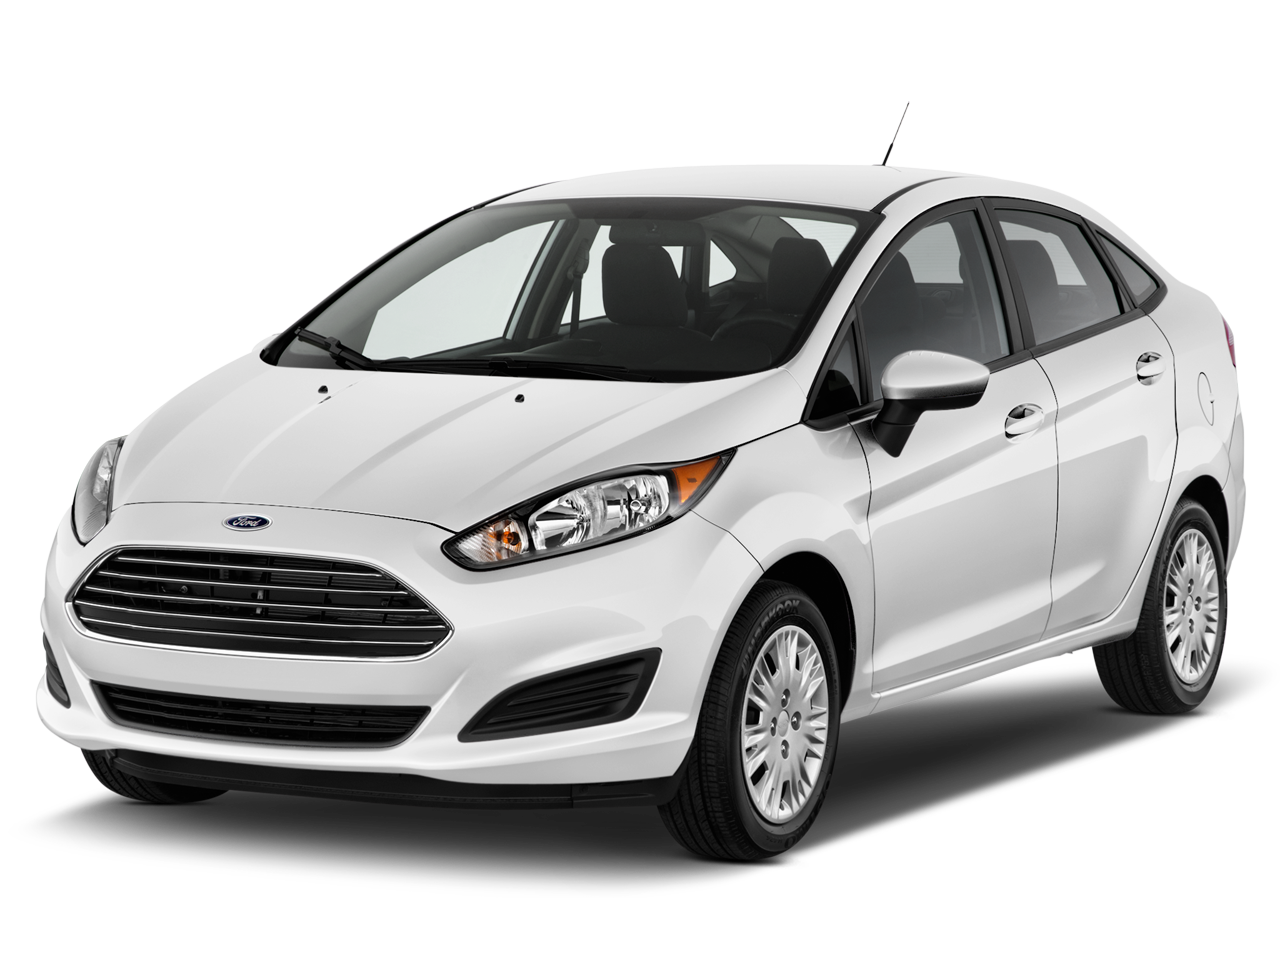 New Vehicles For Sale Near Champaign Il Courtesy Ford Lincoln Gm Upfitter Wiring Diagram